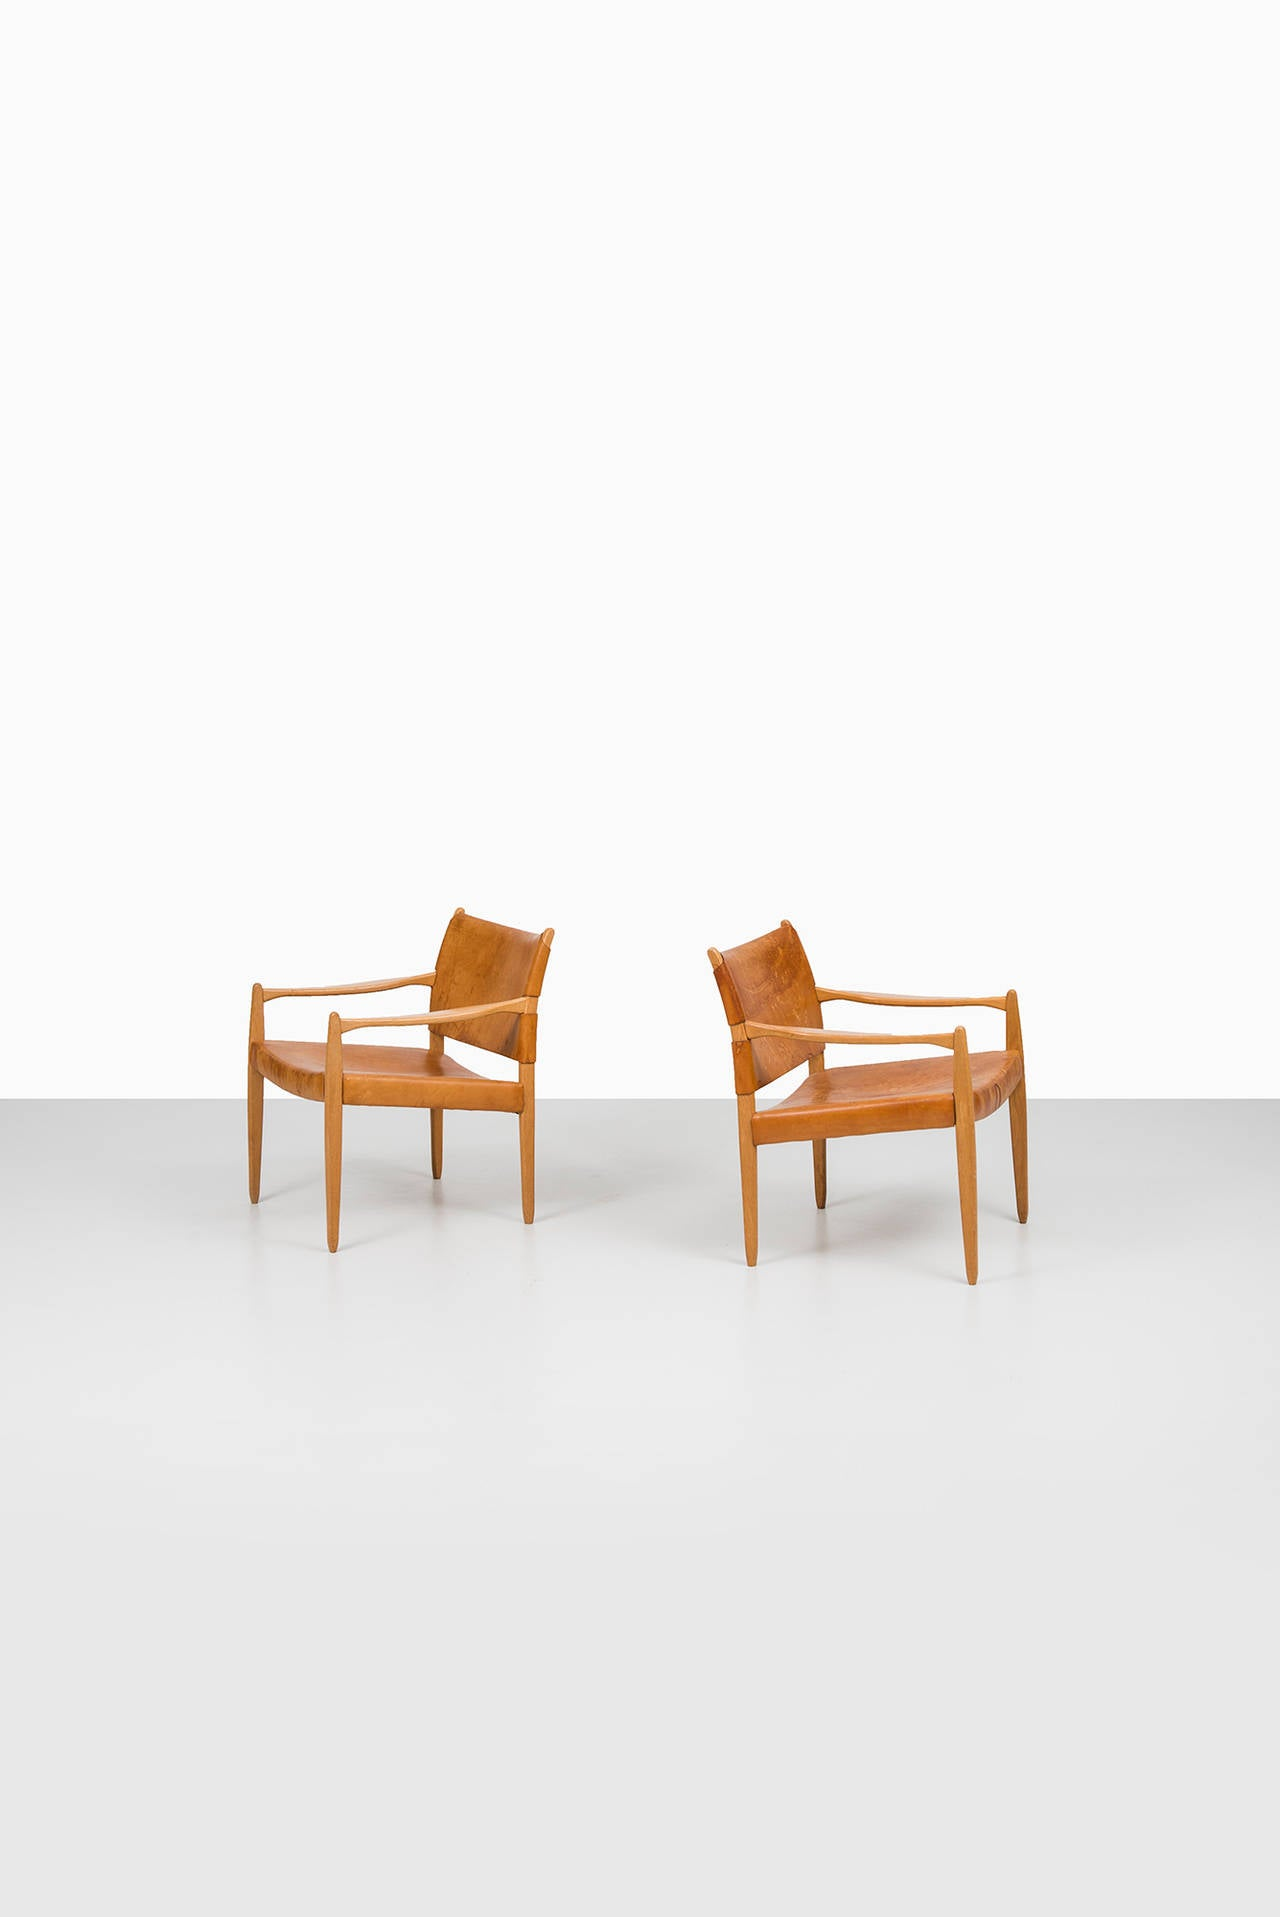 A pair of easy chairs model Premiär designed by Per-Olof Scotte. Produced in Sweden.